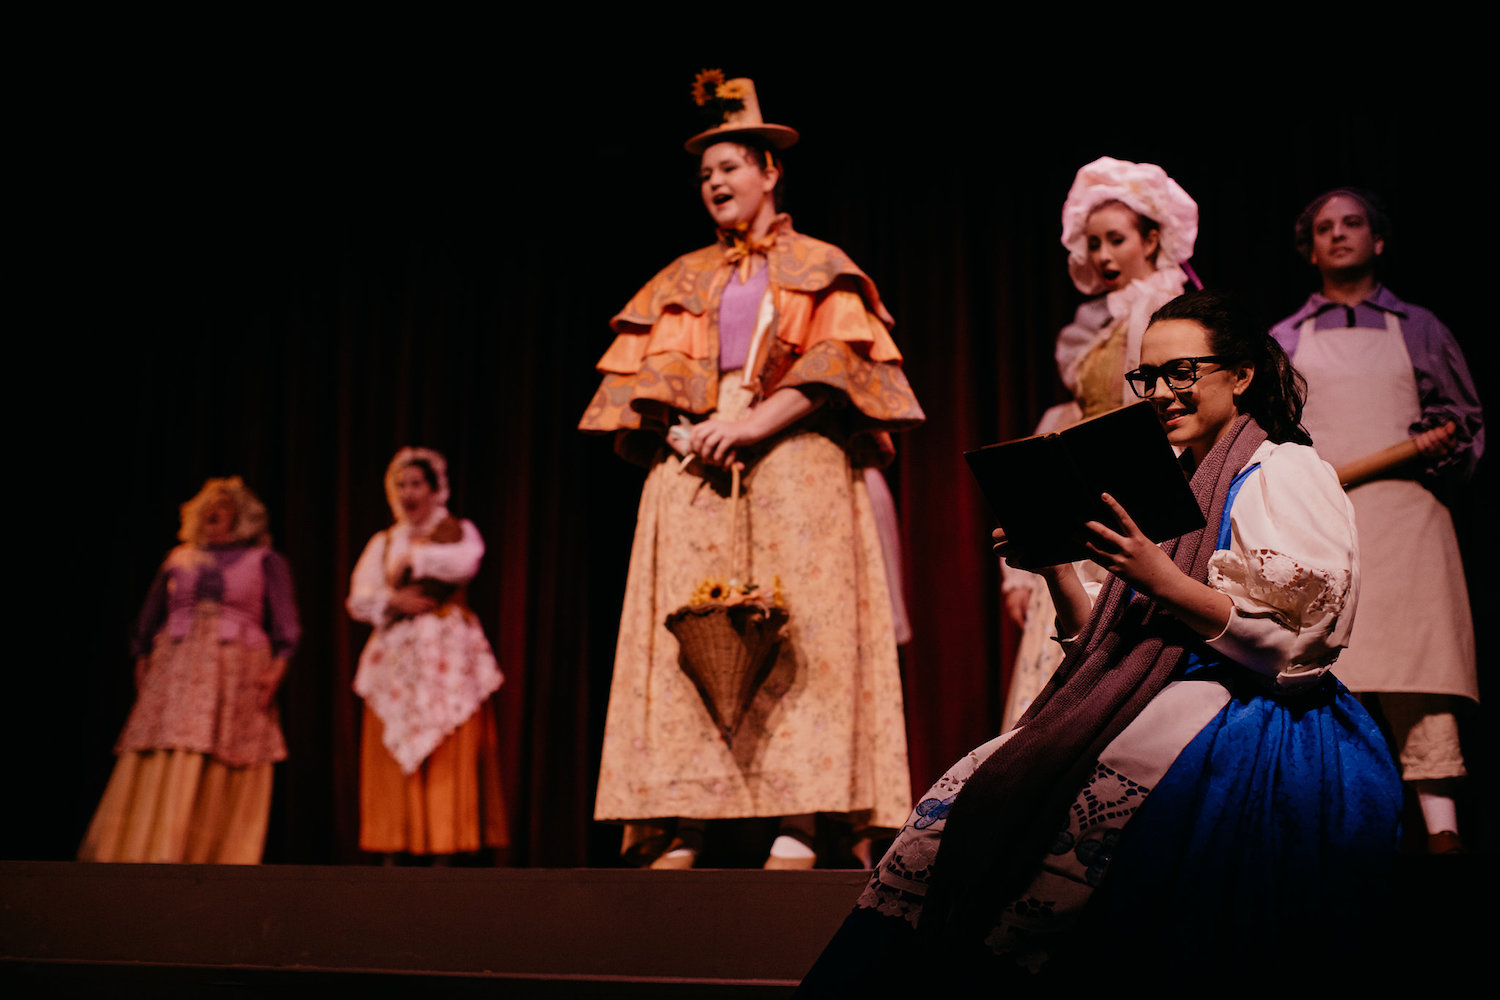 Disney's Beauty and the Beast - Belle | Ferndale Repertory Theatre - Ferndale CA | Leon Villagomez